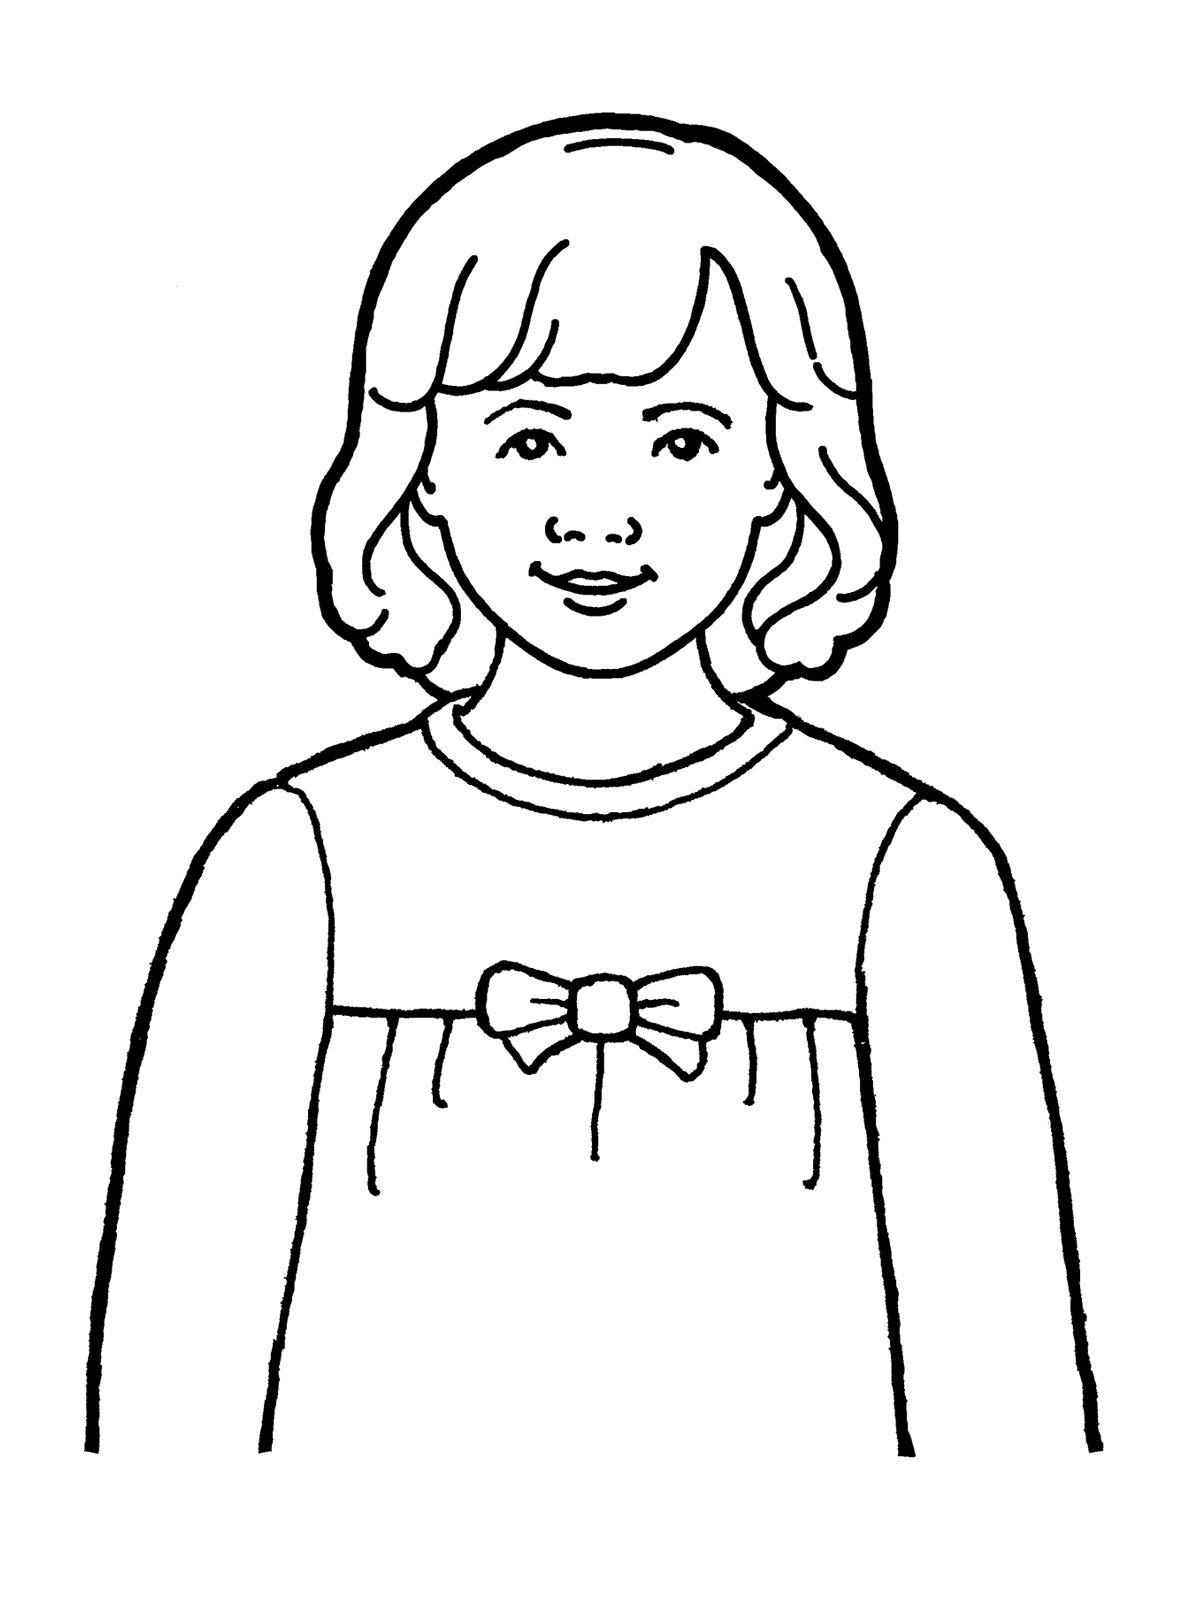 coloring pages of clerks - photo#35